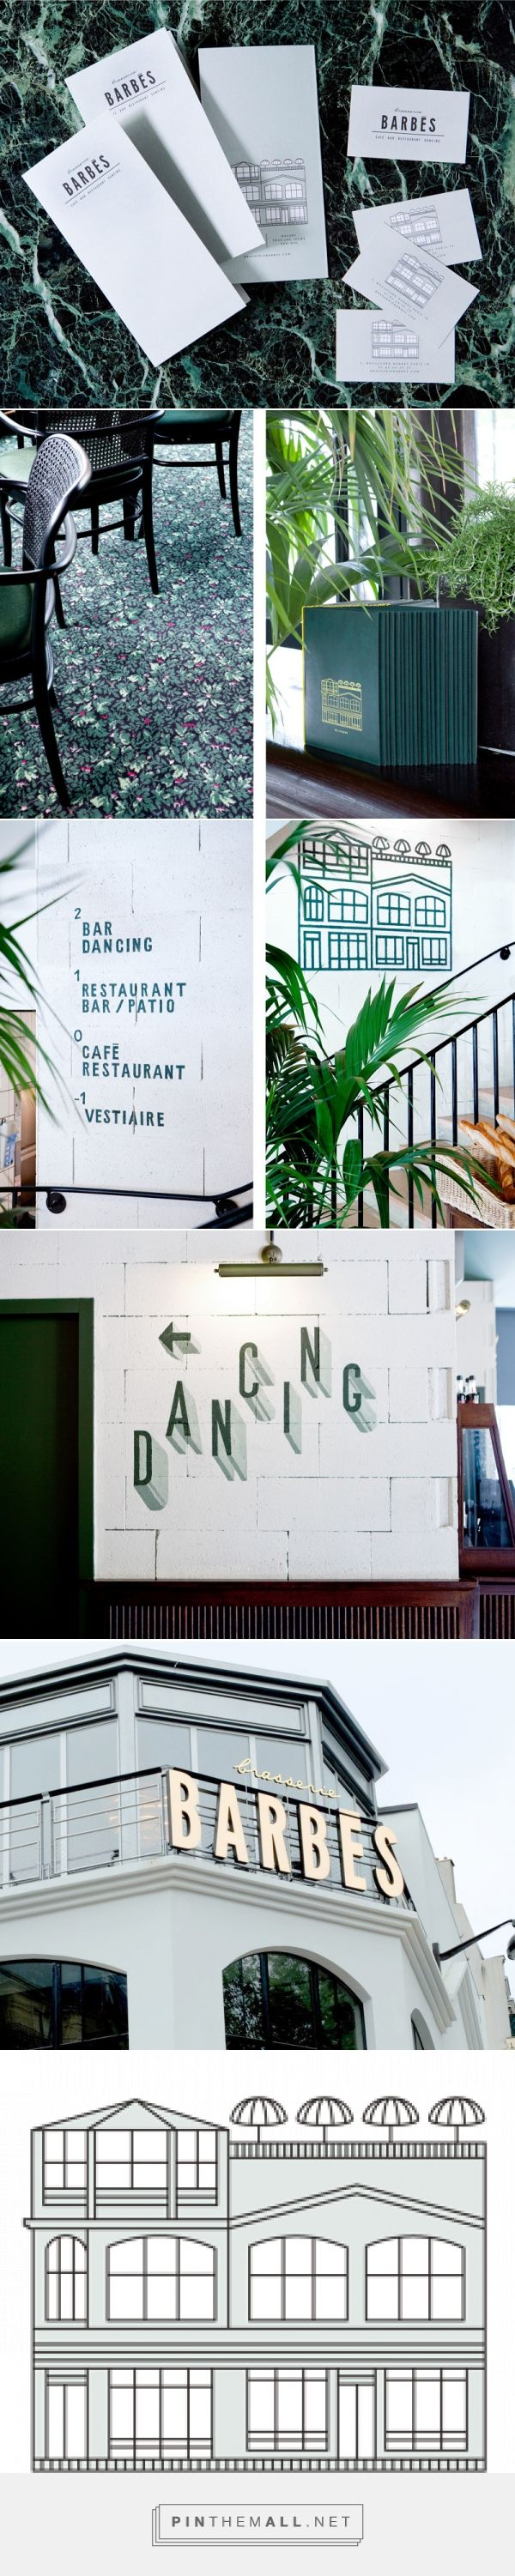 BRASSERIE BARBES - Leslie David - created via http://pinthemall.net